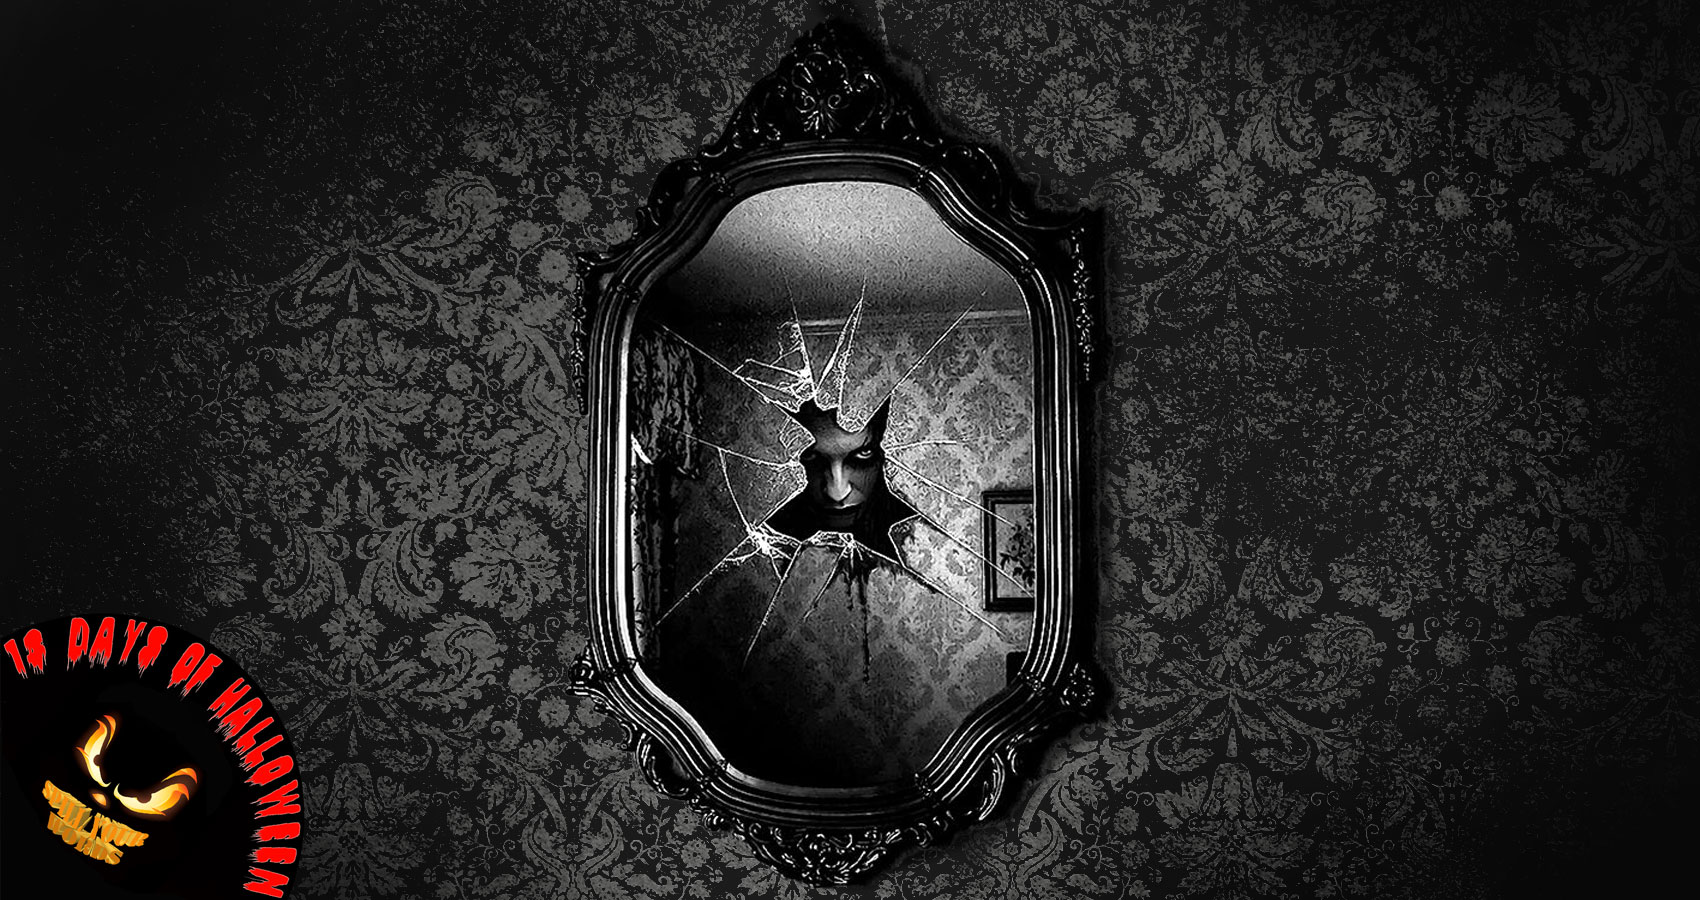 The Thirteen Days of Halloween - The Mirror Man written by Prospermind at Spillwords.com